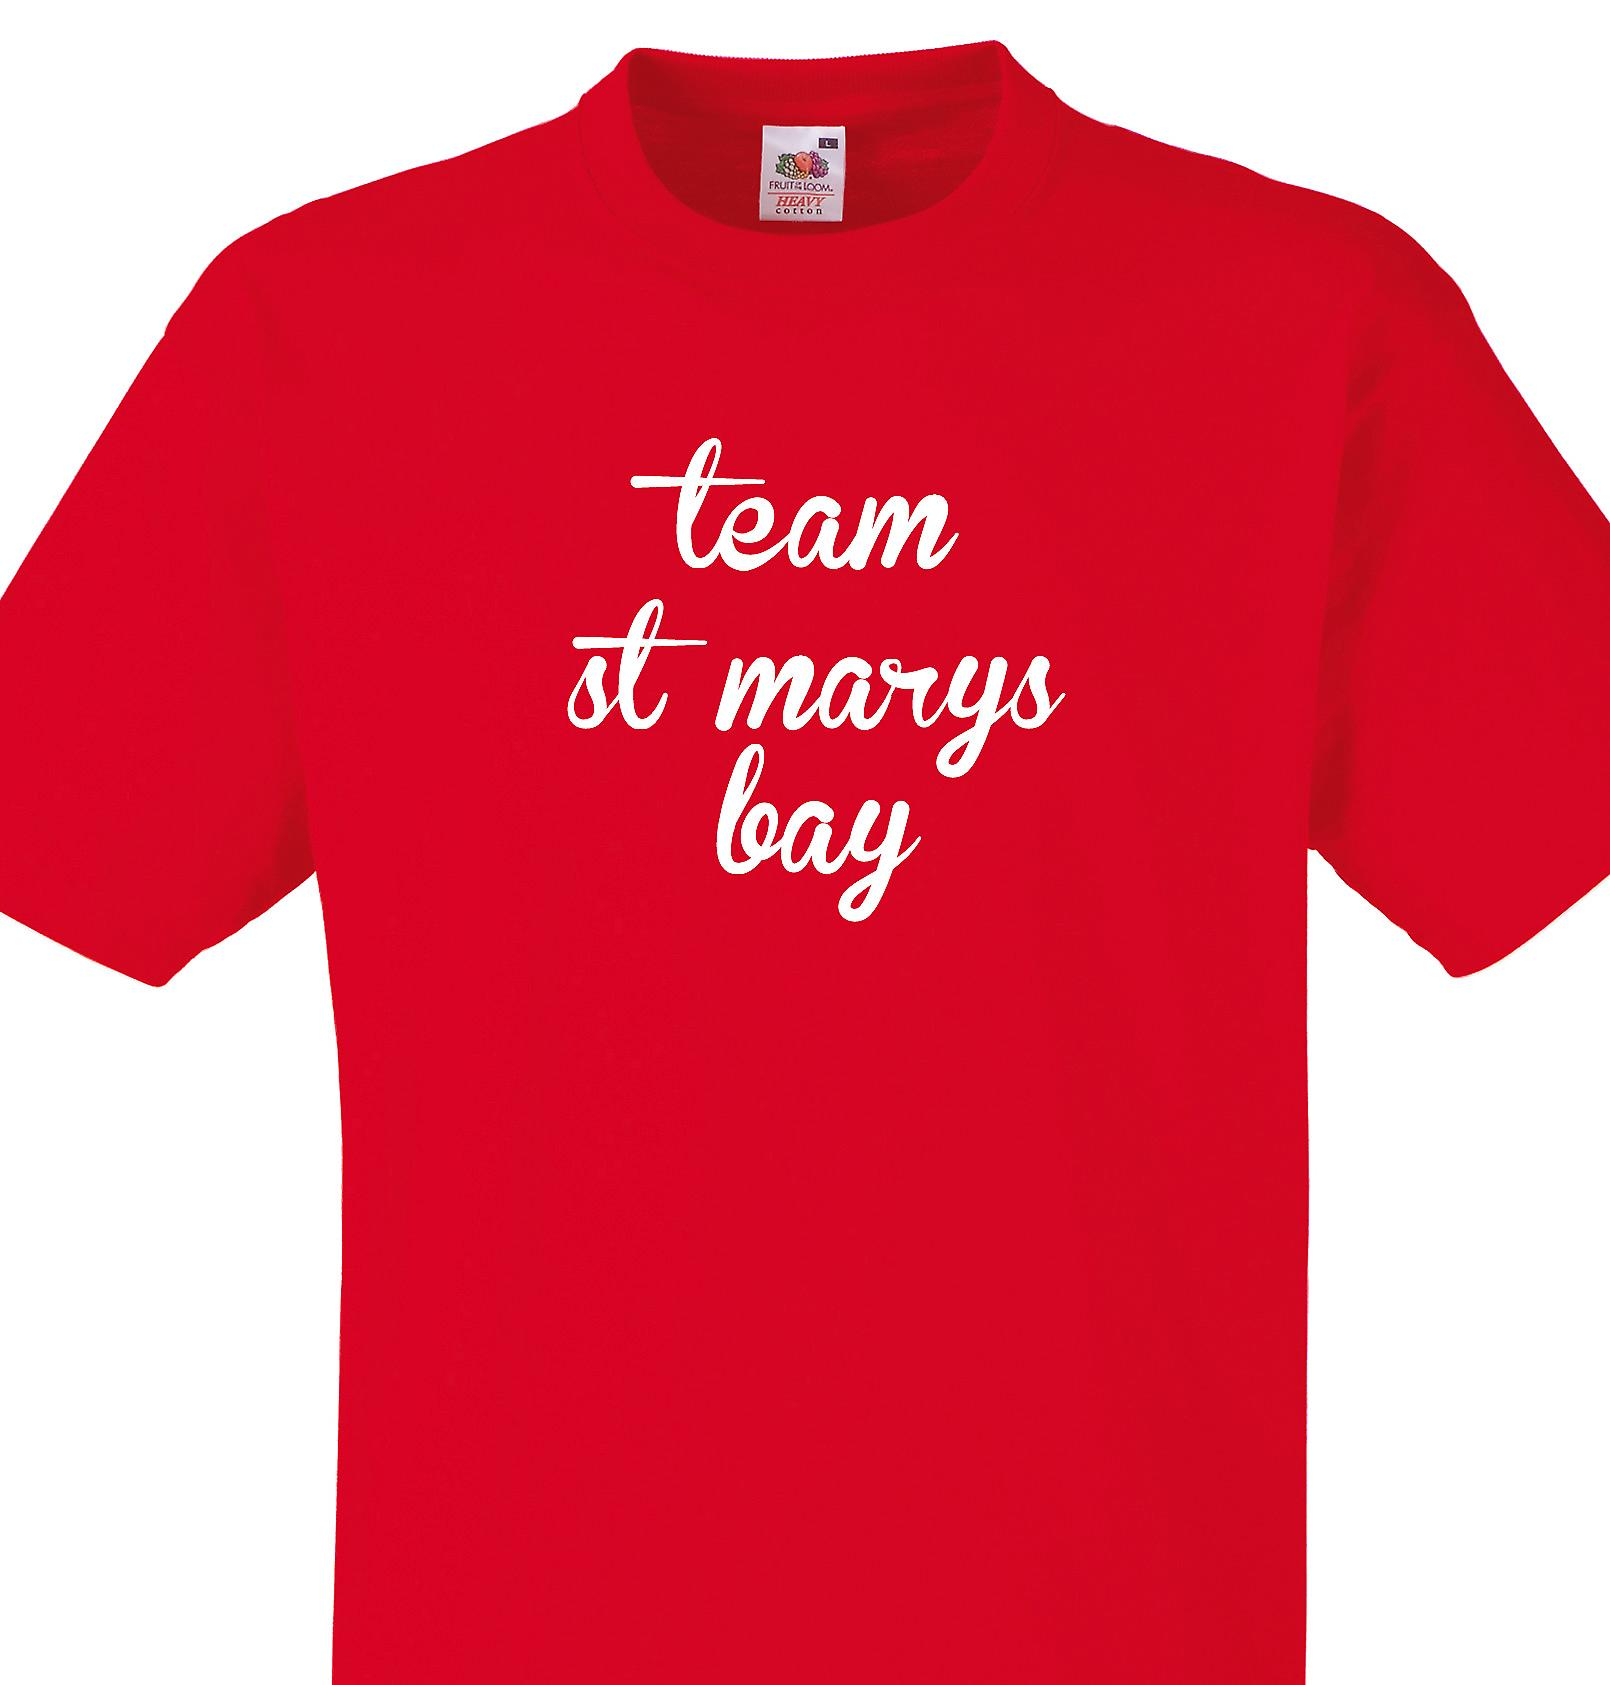 Team St marys bay Red T shirt